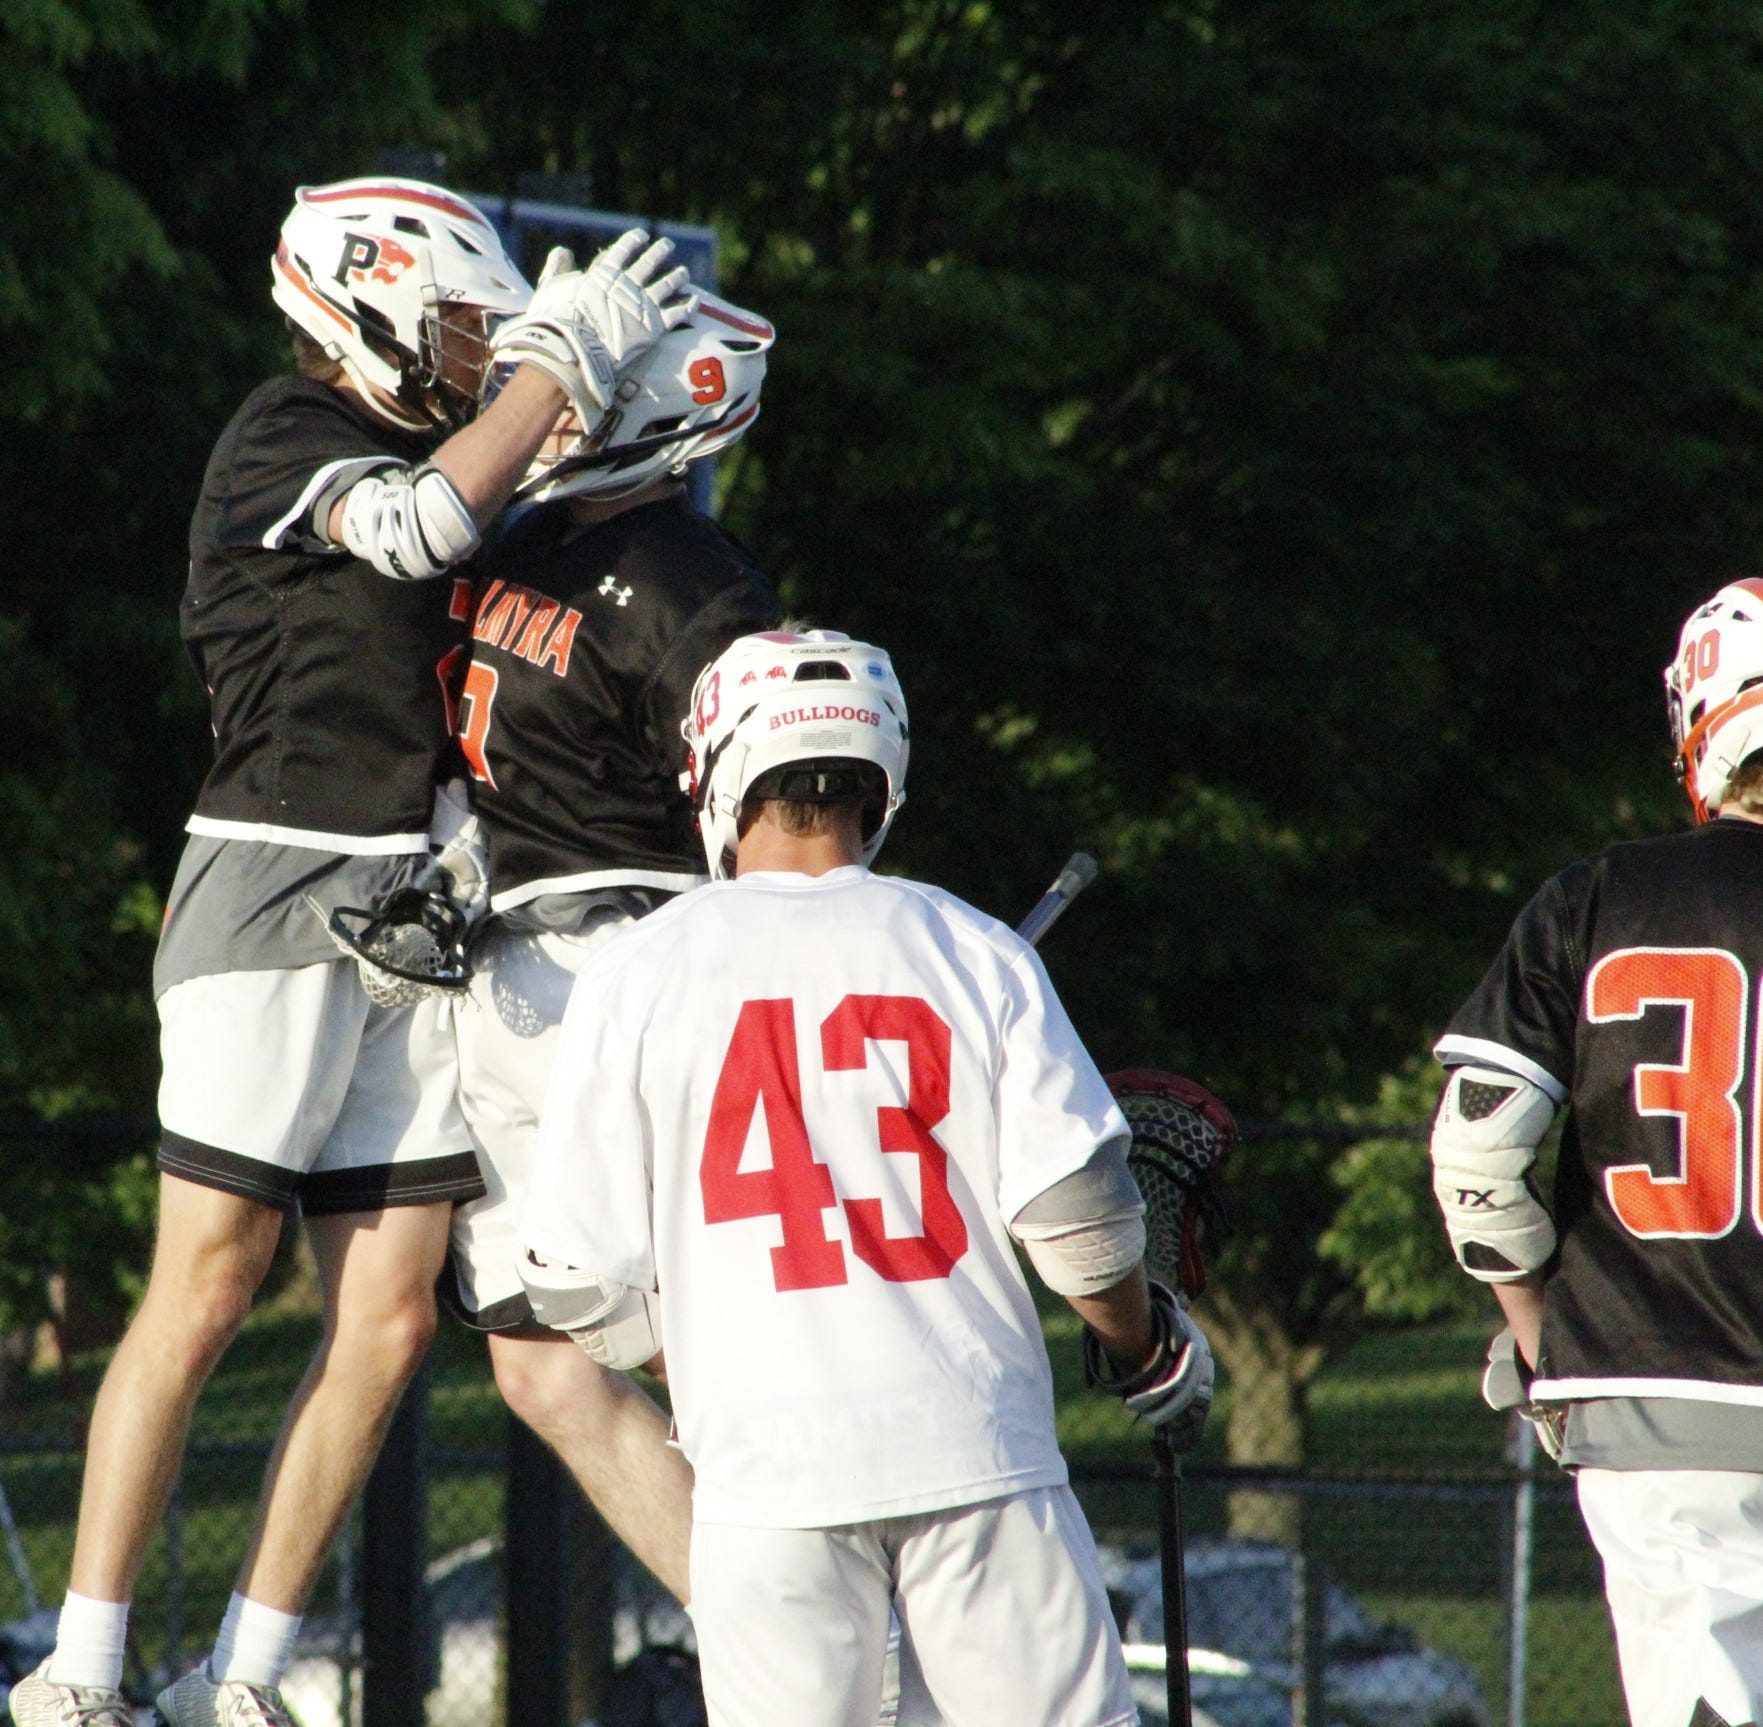 Kyle Wasilewski and Grant Haus celebrate after collaborating on a Haus goal. Together they scored eight goals.